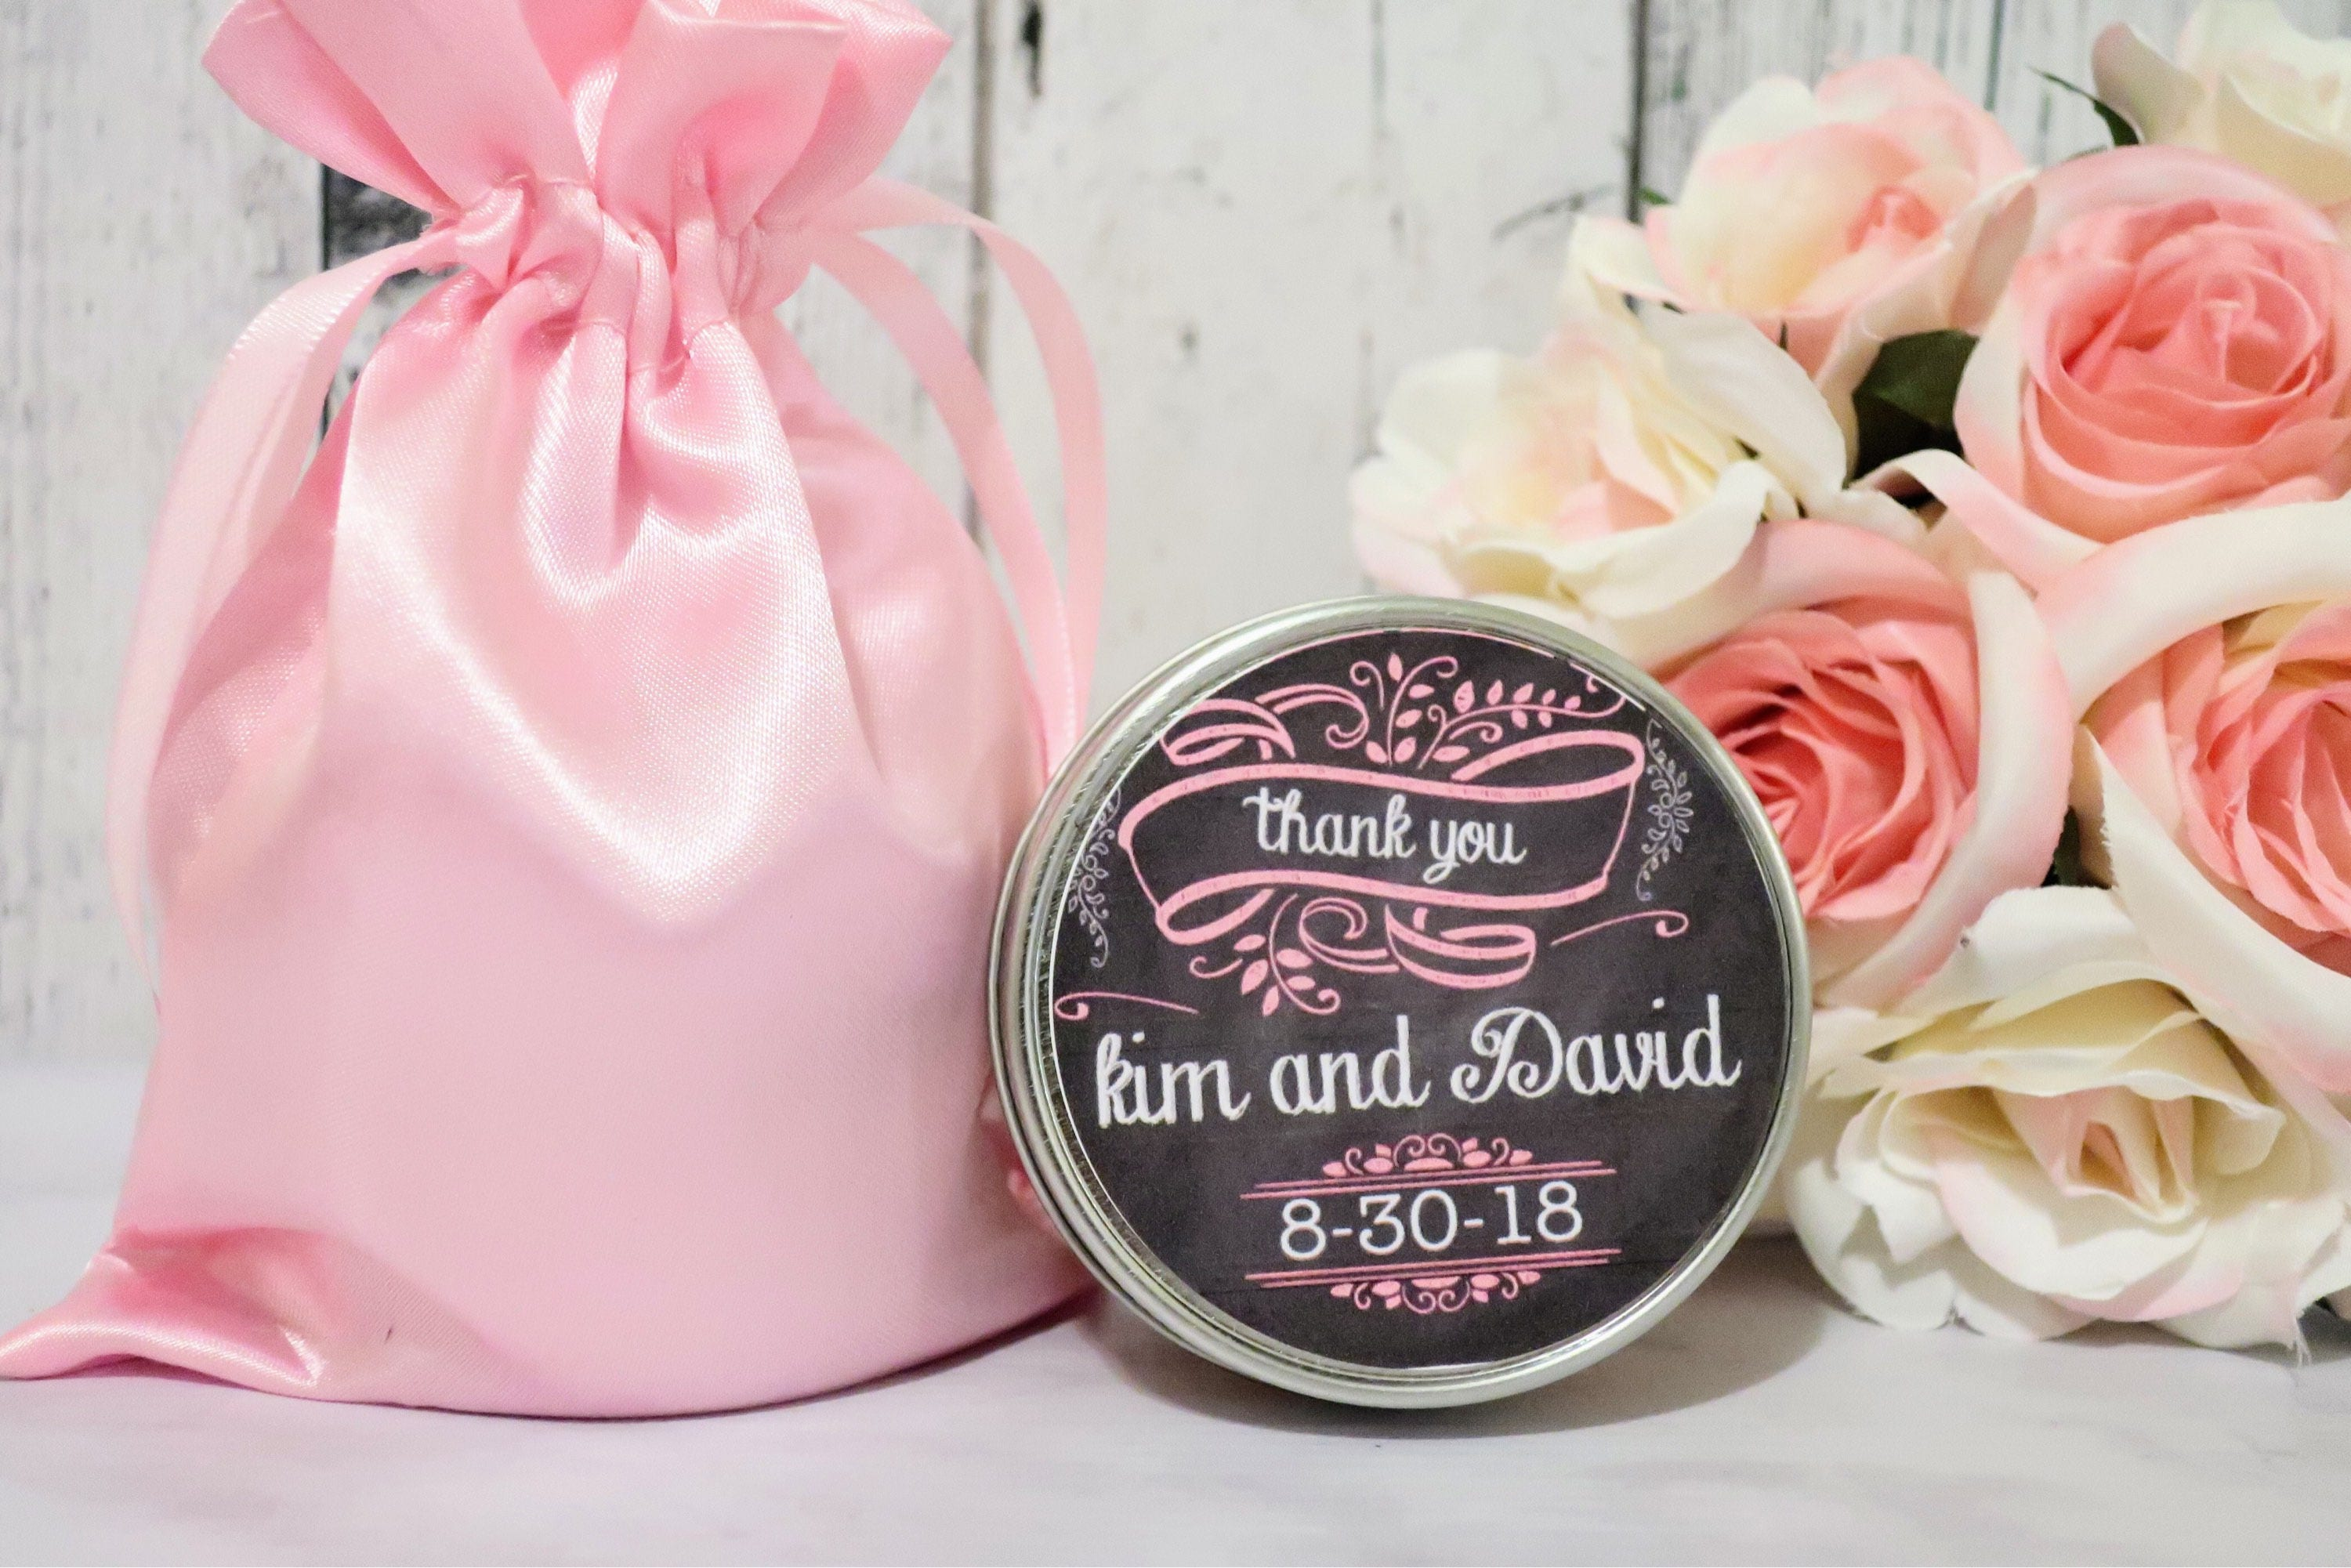 Rustic wedding favors - Rustic Favors - Chalkboard Wedding - Rustic ...